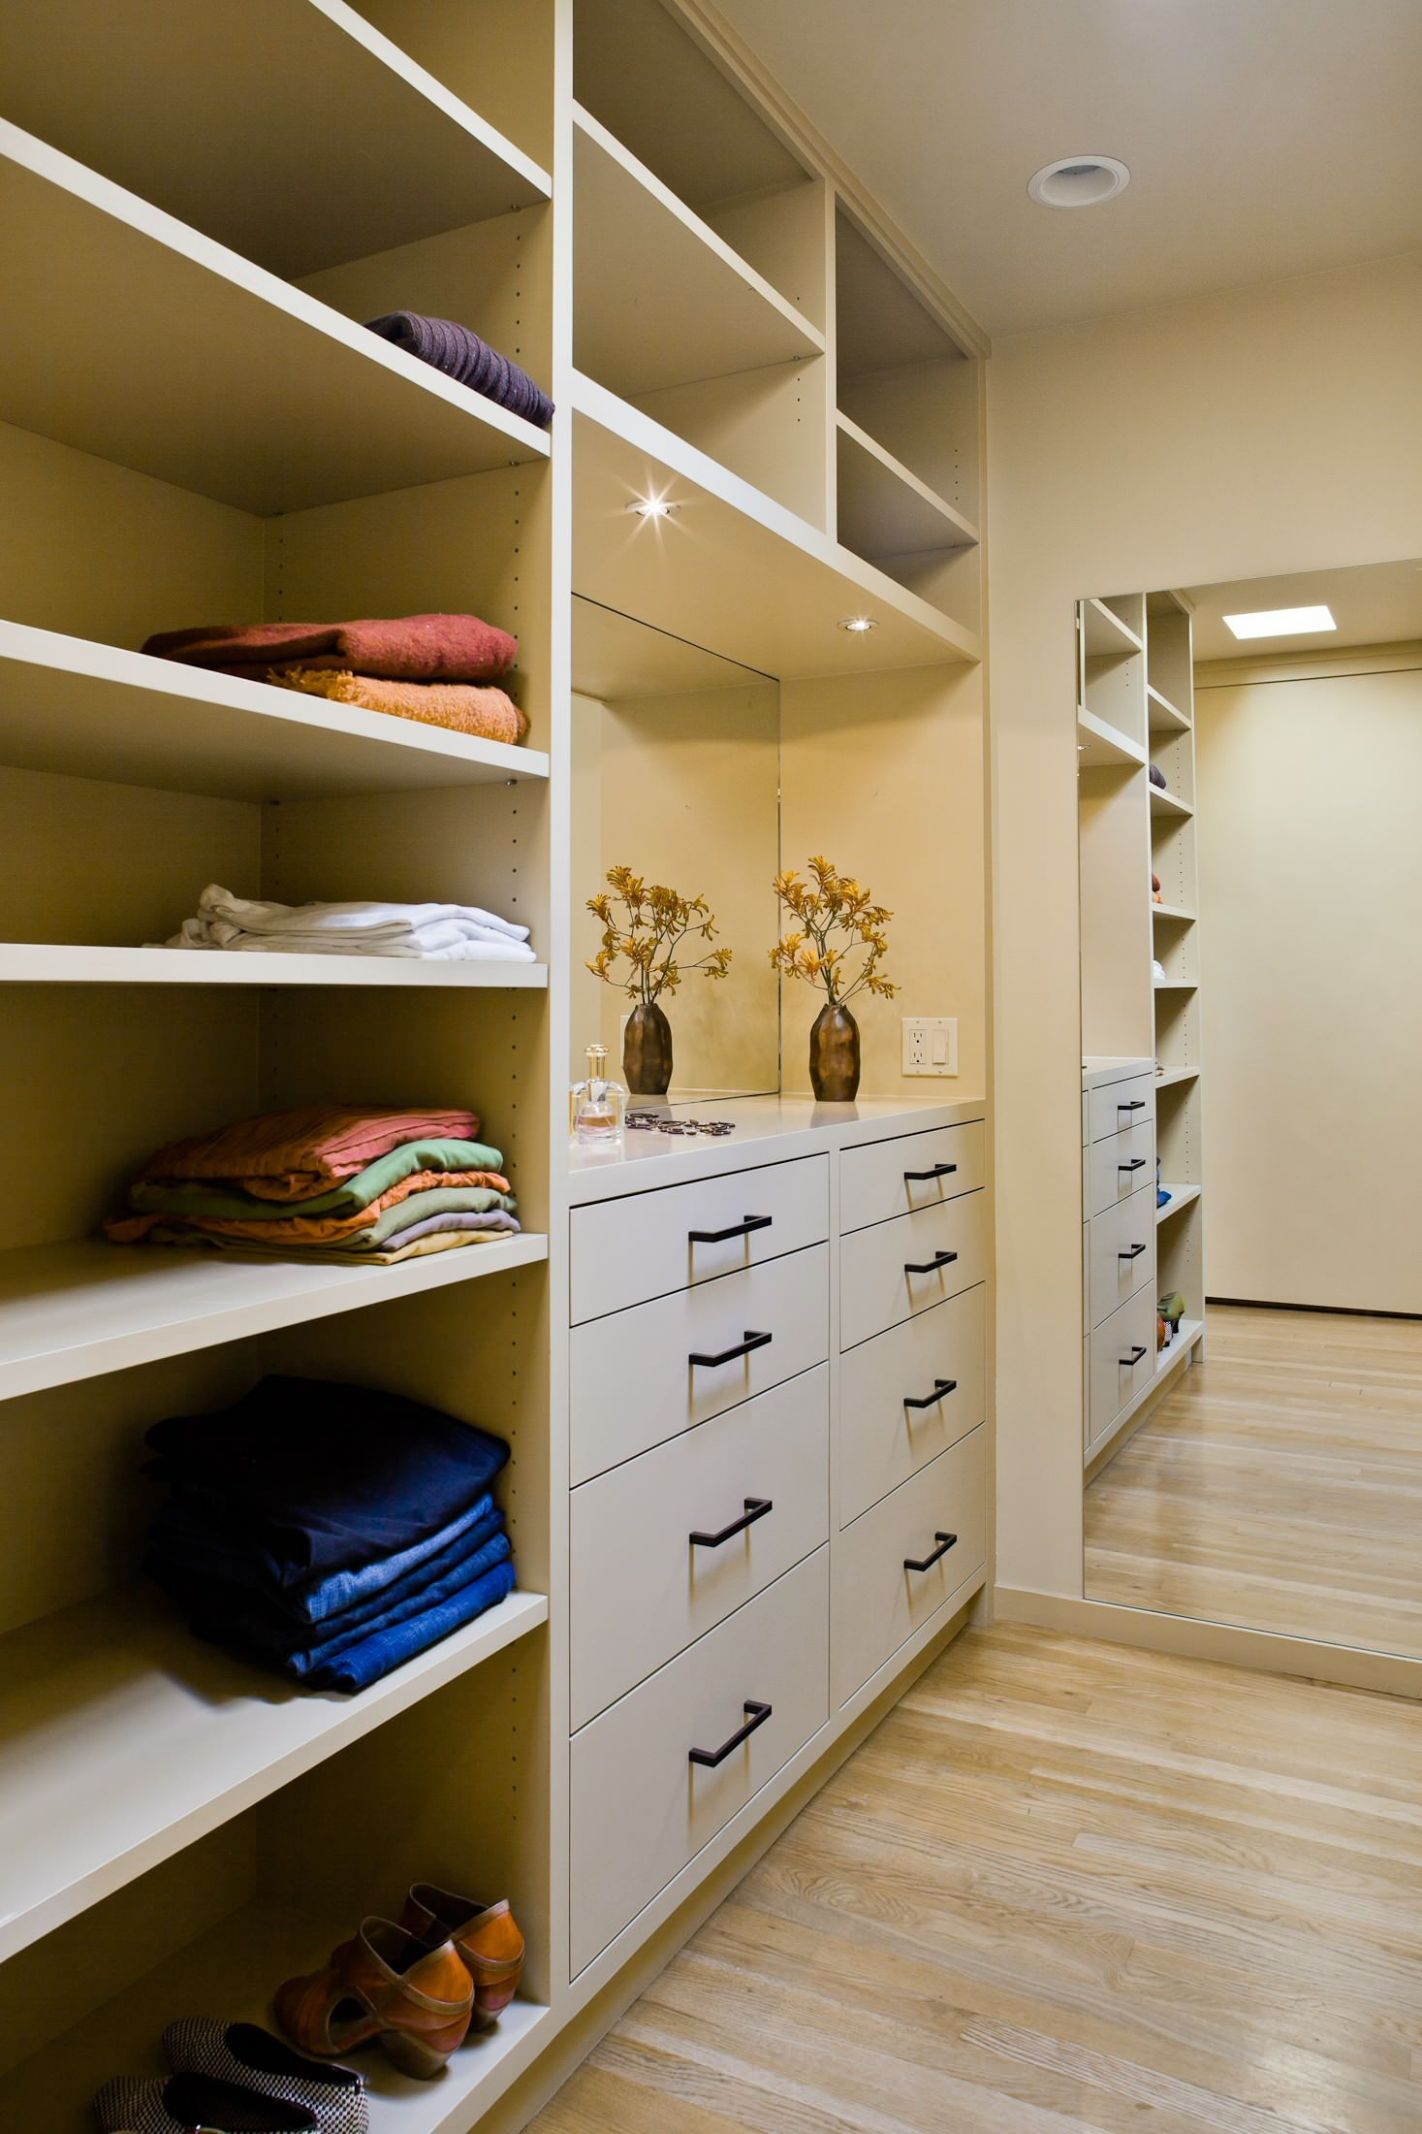 10 Great Walk-In Closet Ideas (With images) | Closet storage ...